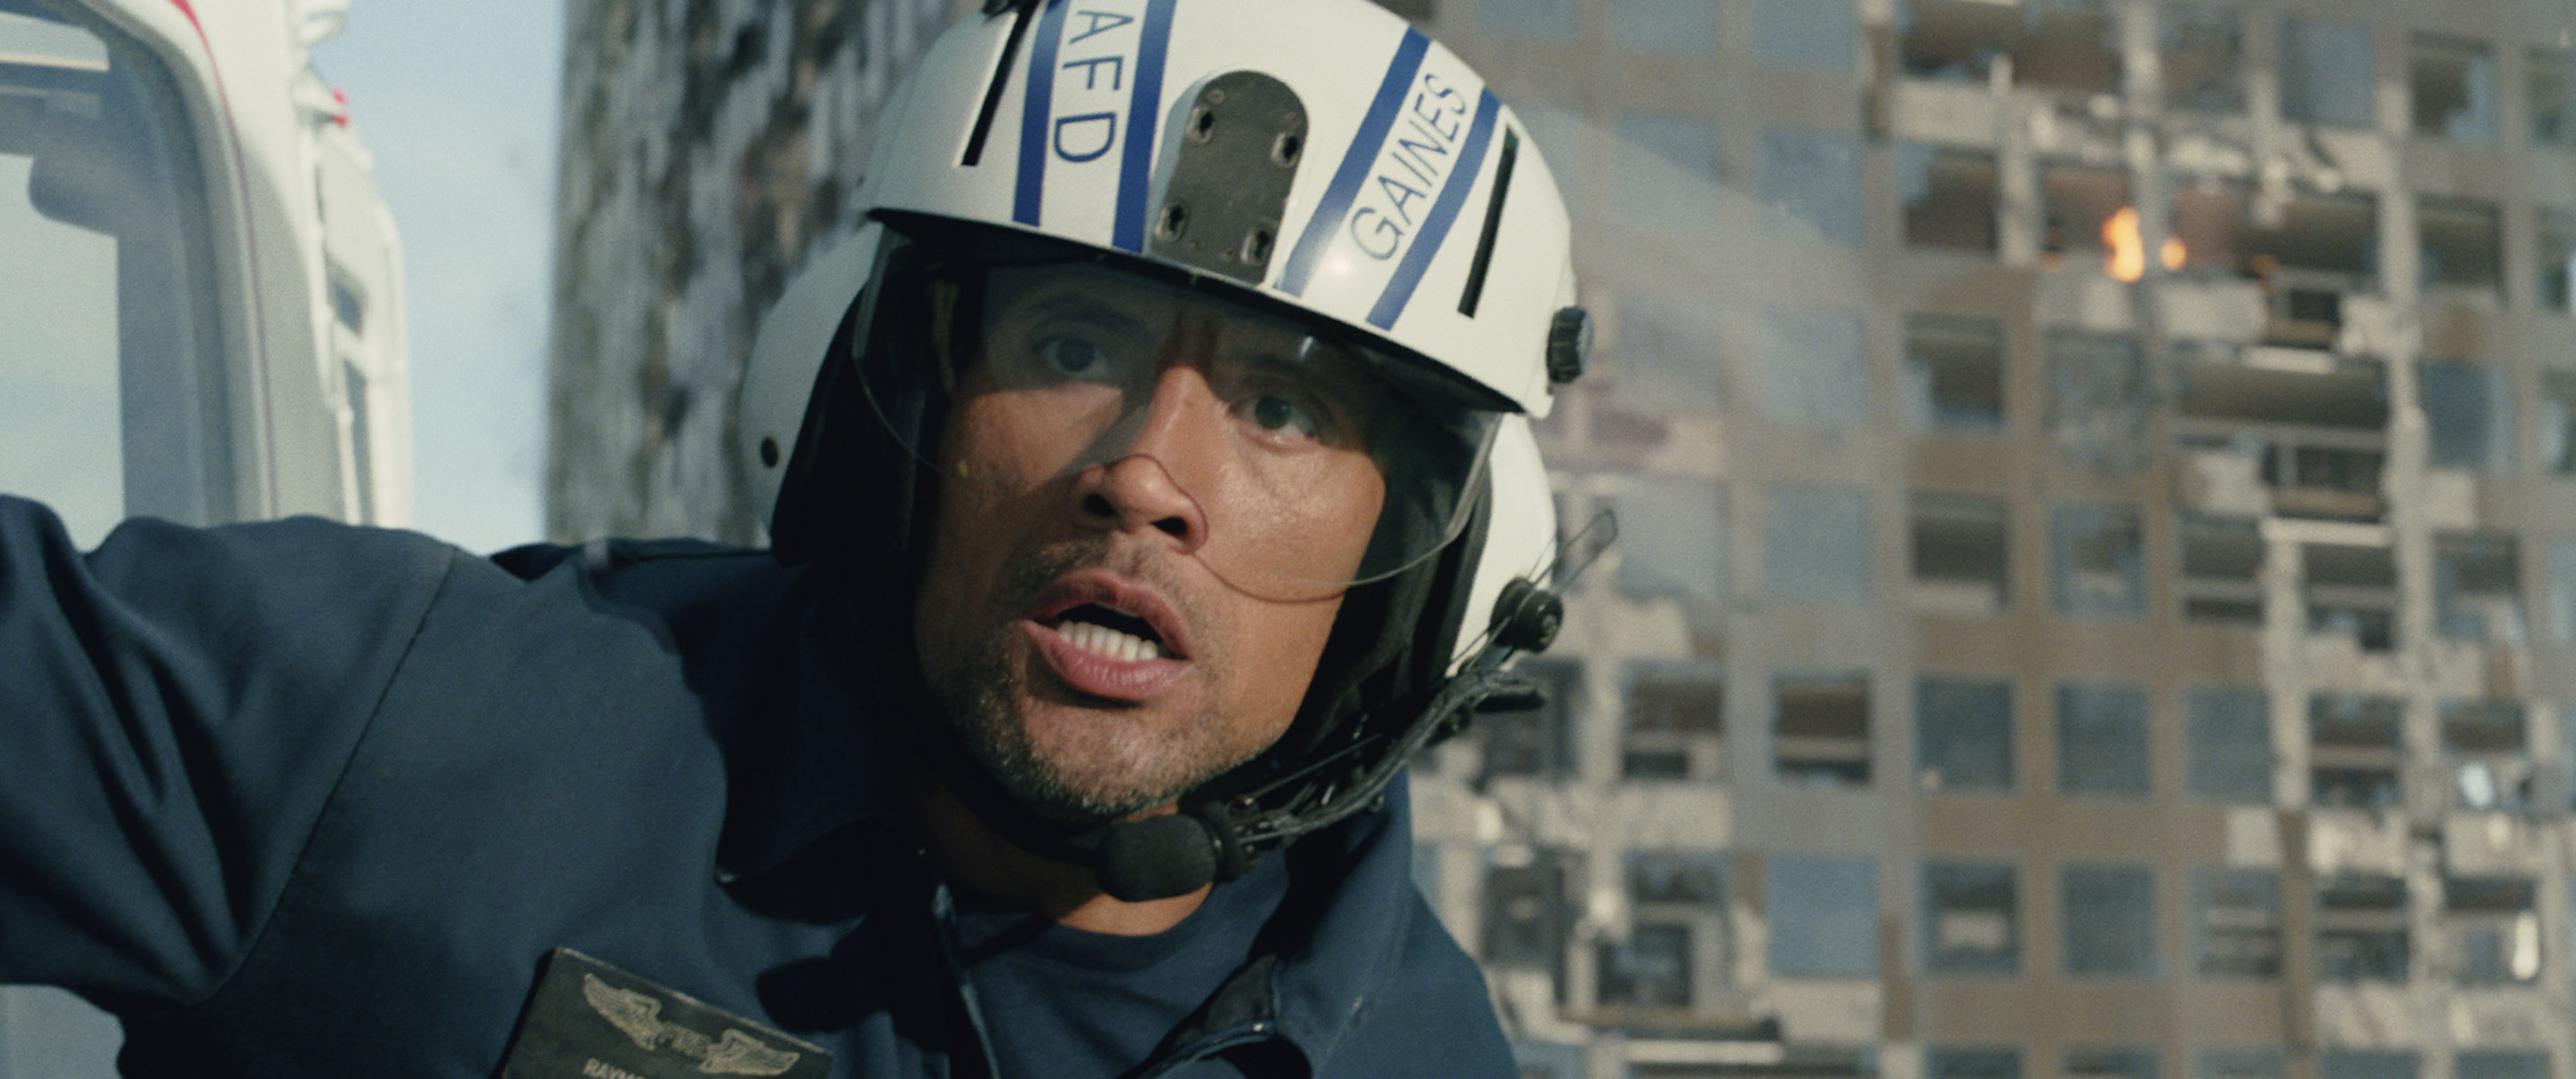 "Dwayne Johnson as Ray in the action thriller ""San Andreas,"" a prouction of New Line Cinema and Village Roadshow Pictures, released by Warner Bros. Pictures. (Jasin Boland/Warner Bros.)"